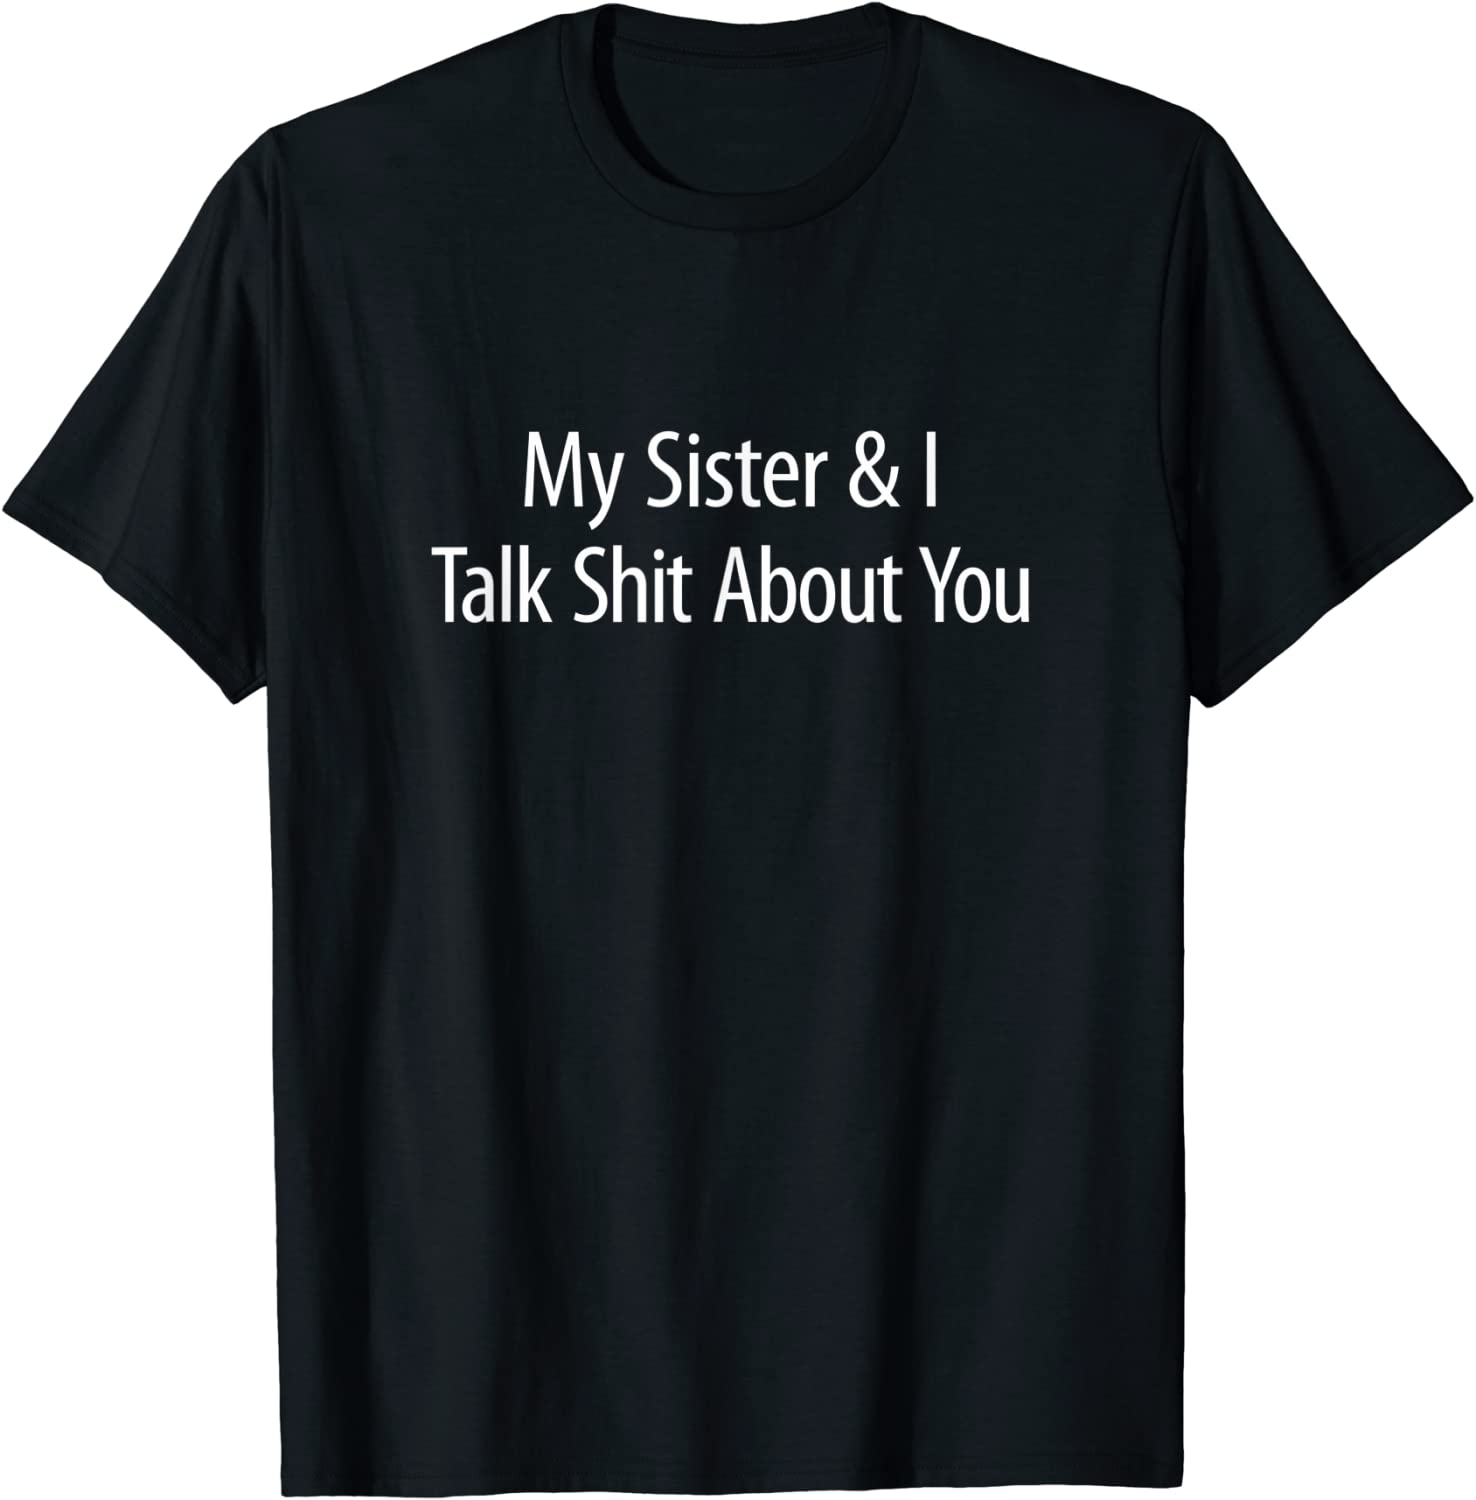 Women T-Shirt My Sister /& I Talk Shit About You Letter Print Blouse Casual Round Neck Short Sleeve Shirts Tops